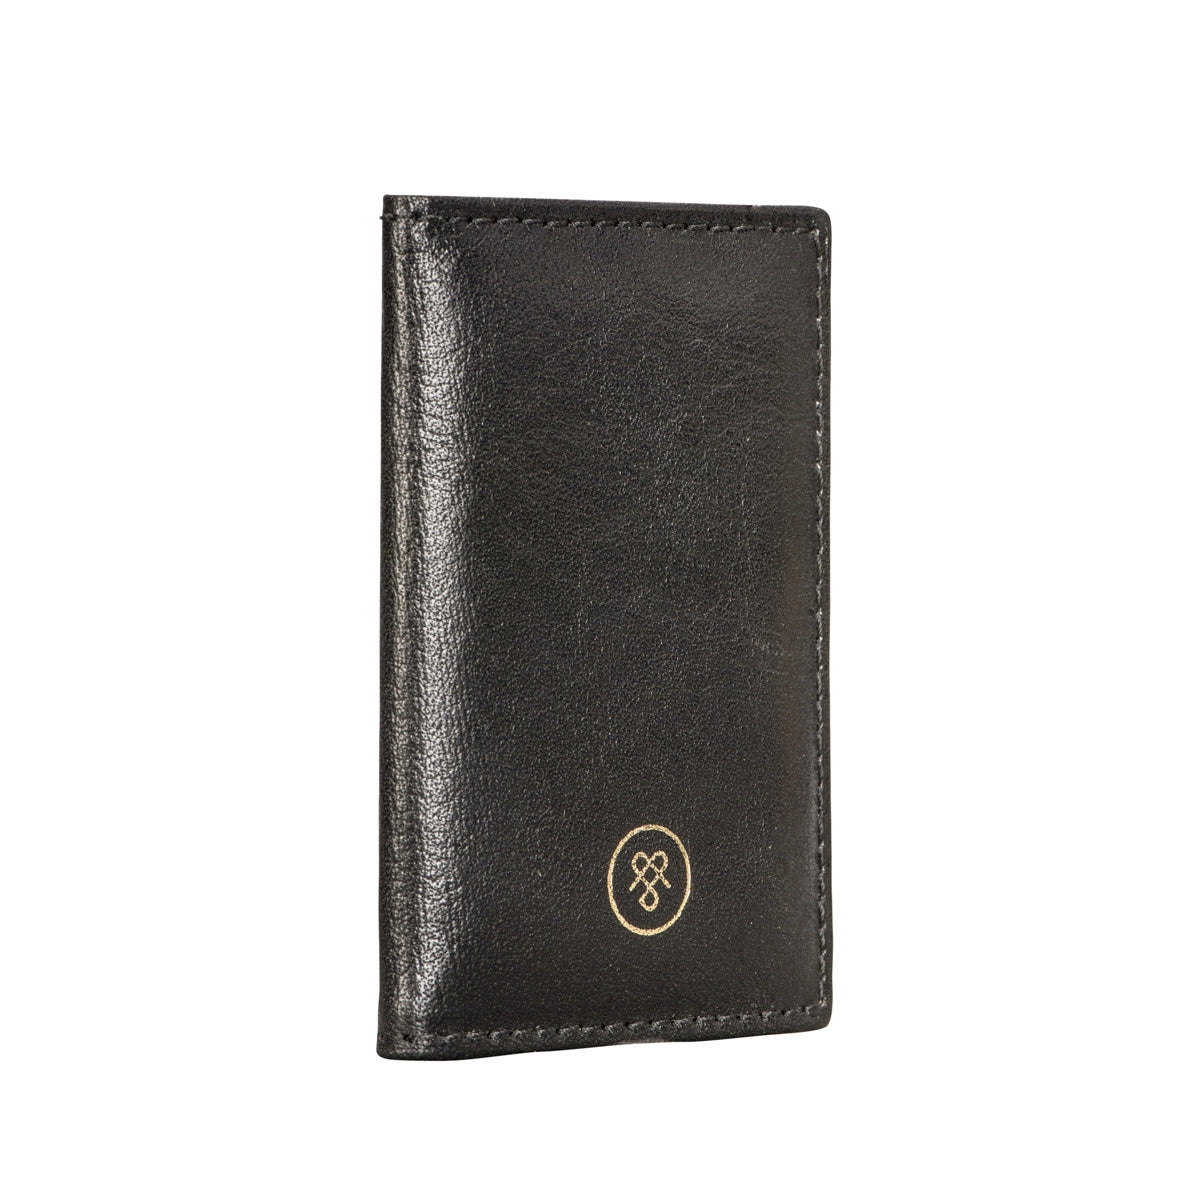 Image 3 of the 'Caldana' Black Mini Pocket Veg-Tanned Leather Address Book